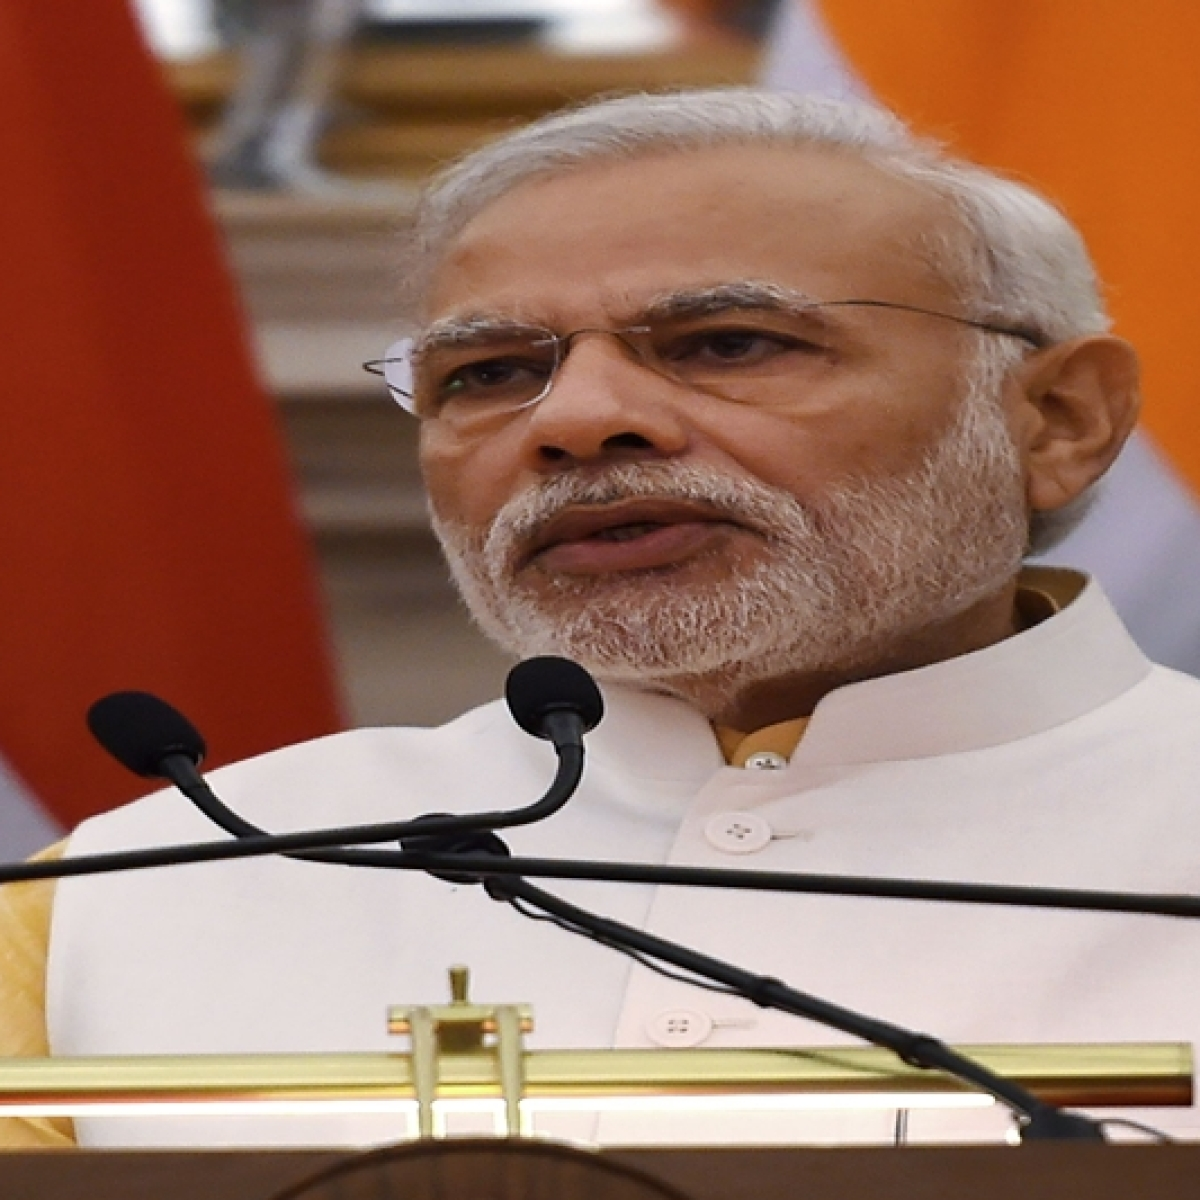 Work together, not in silos, PM Modi tells IAS officers